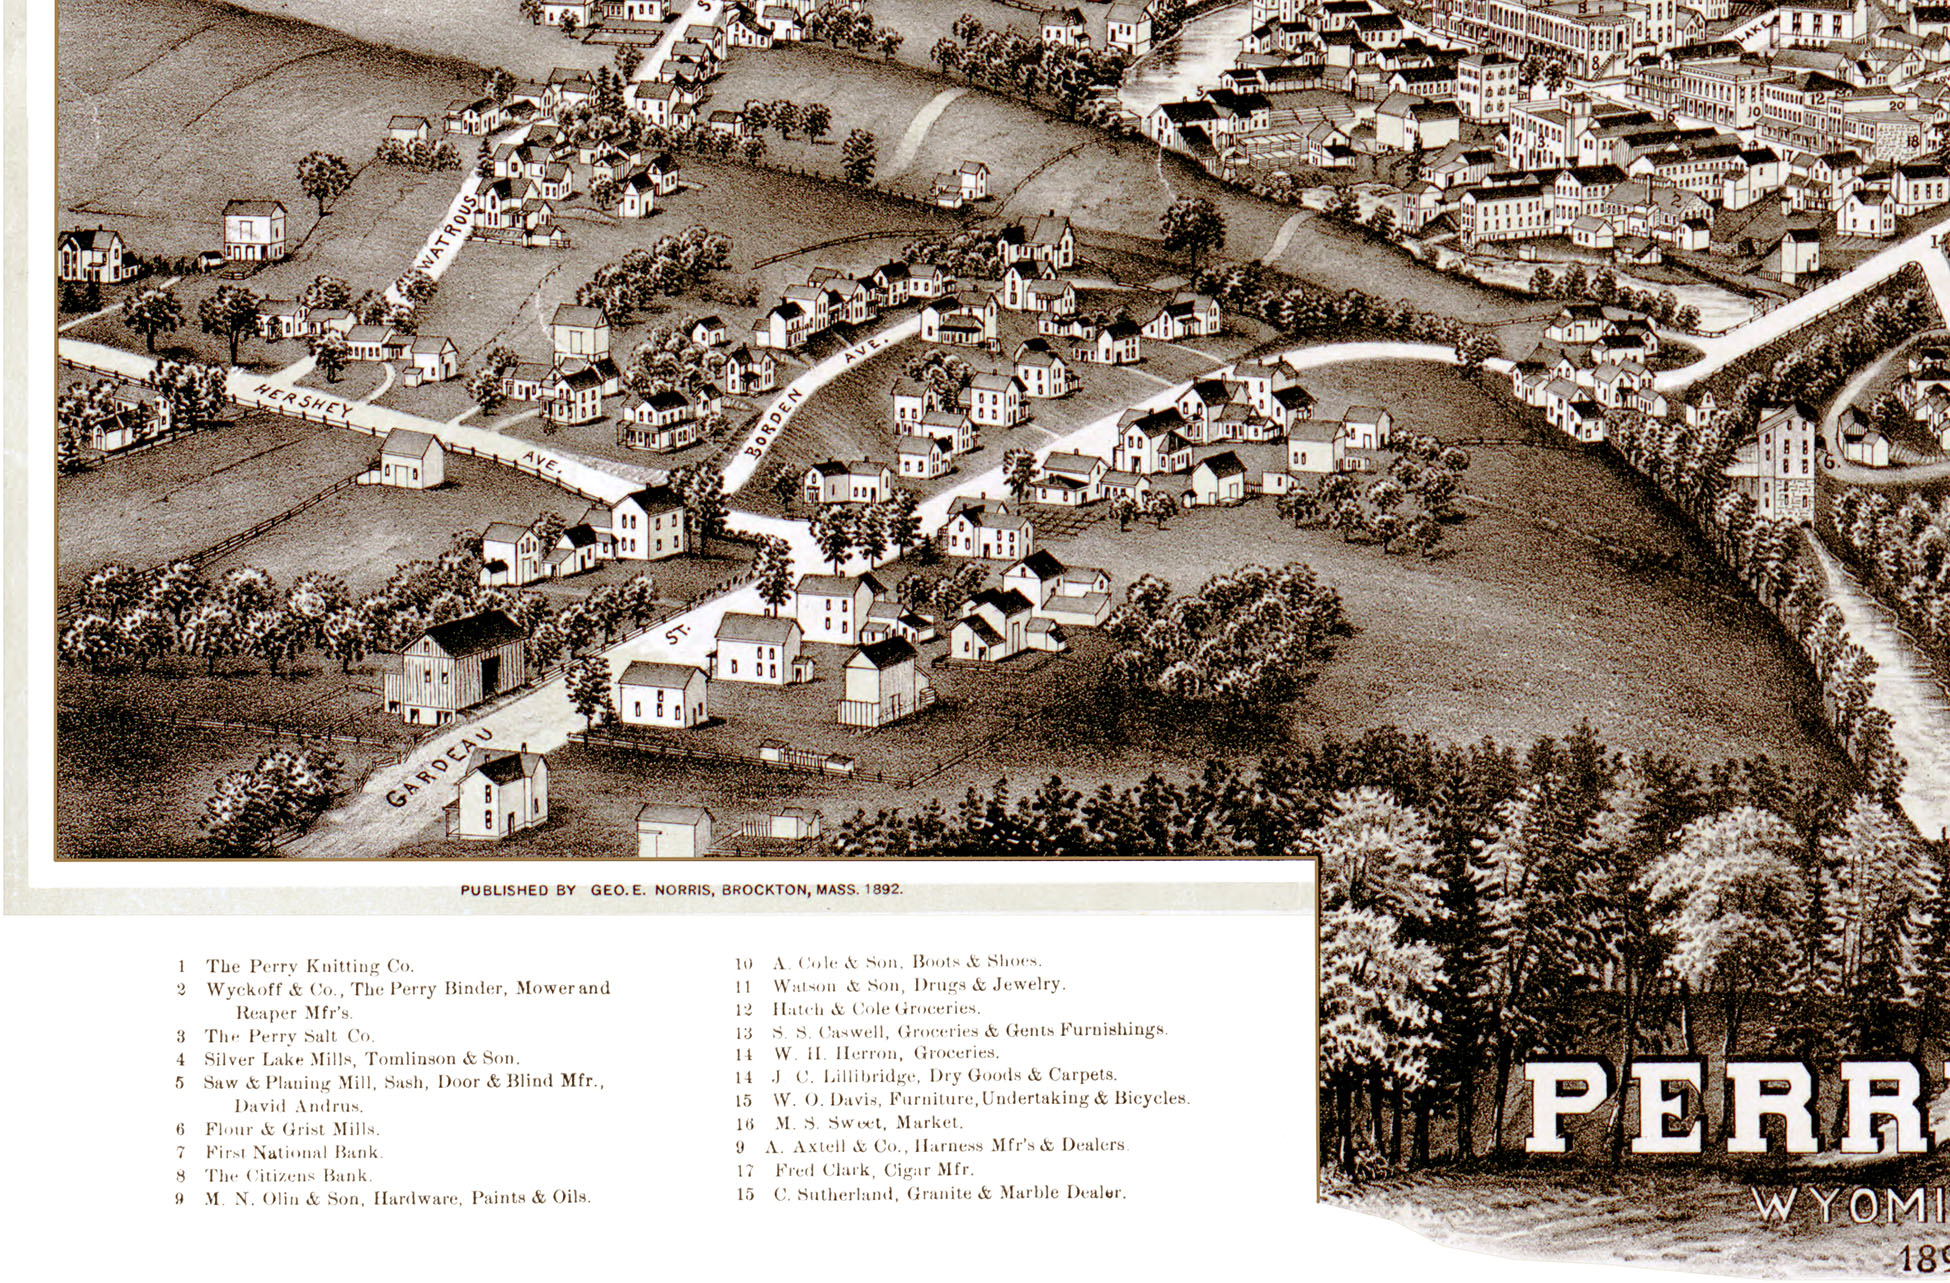 Perry New York In Birds Eye View Aerial Panorama Vintage - Antique map dealers